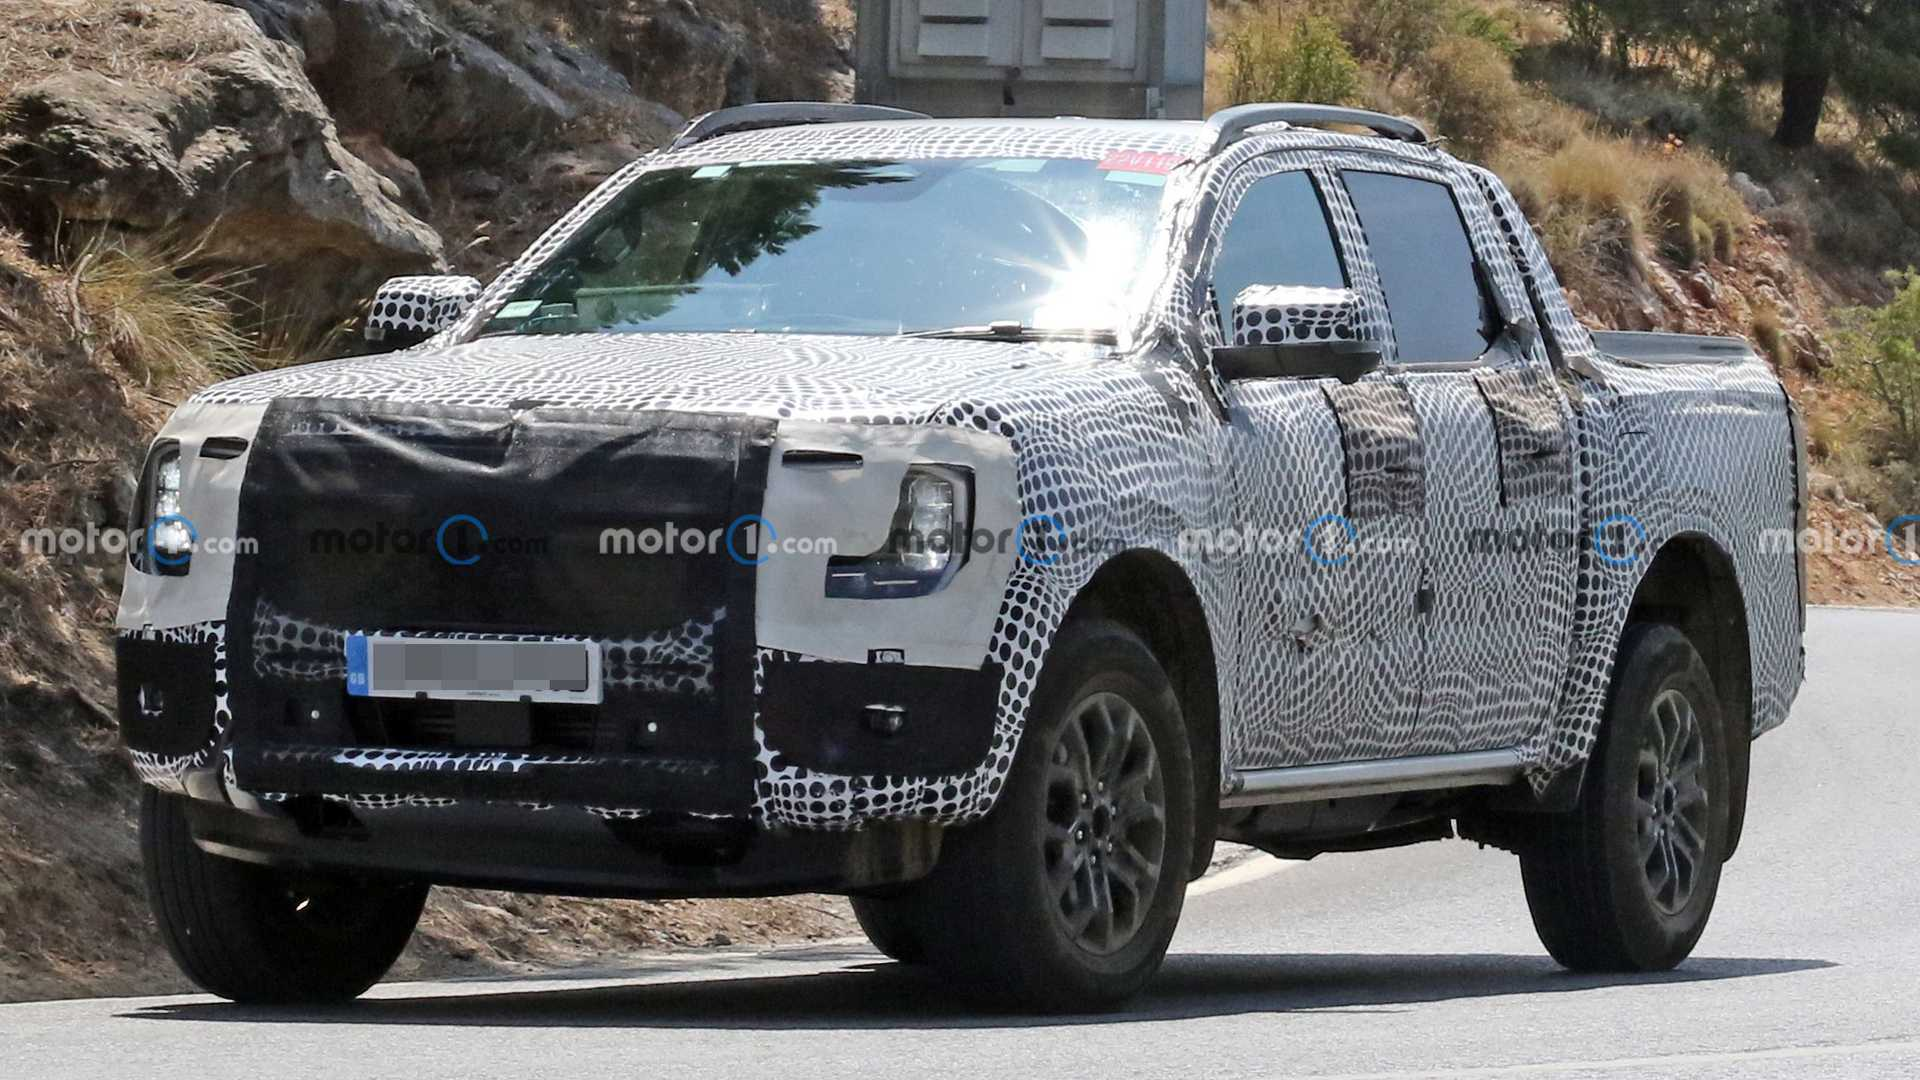 With the recent advent of the Ford Maverick, it became easy forget that the latest Ford Ranger barely turned two years old. Despite this, insiders are reporting that a new generation is coming to the United States in mid-2023.